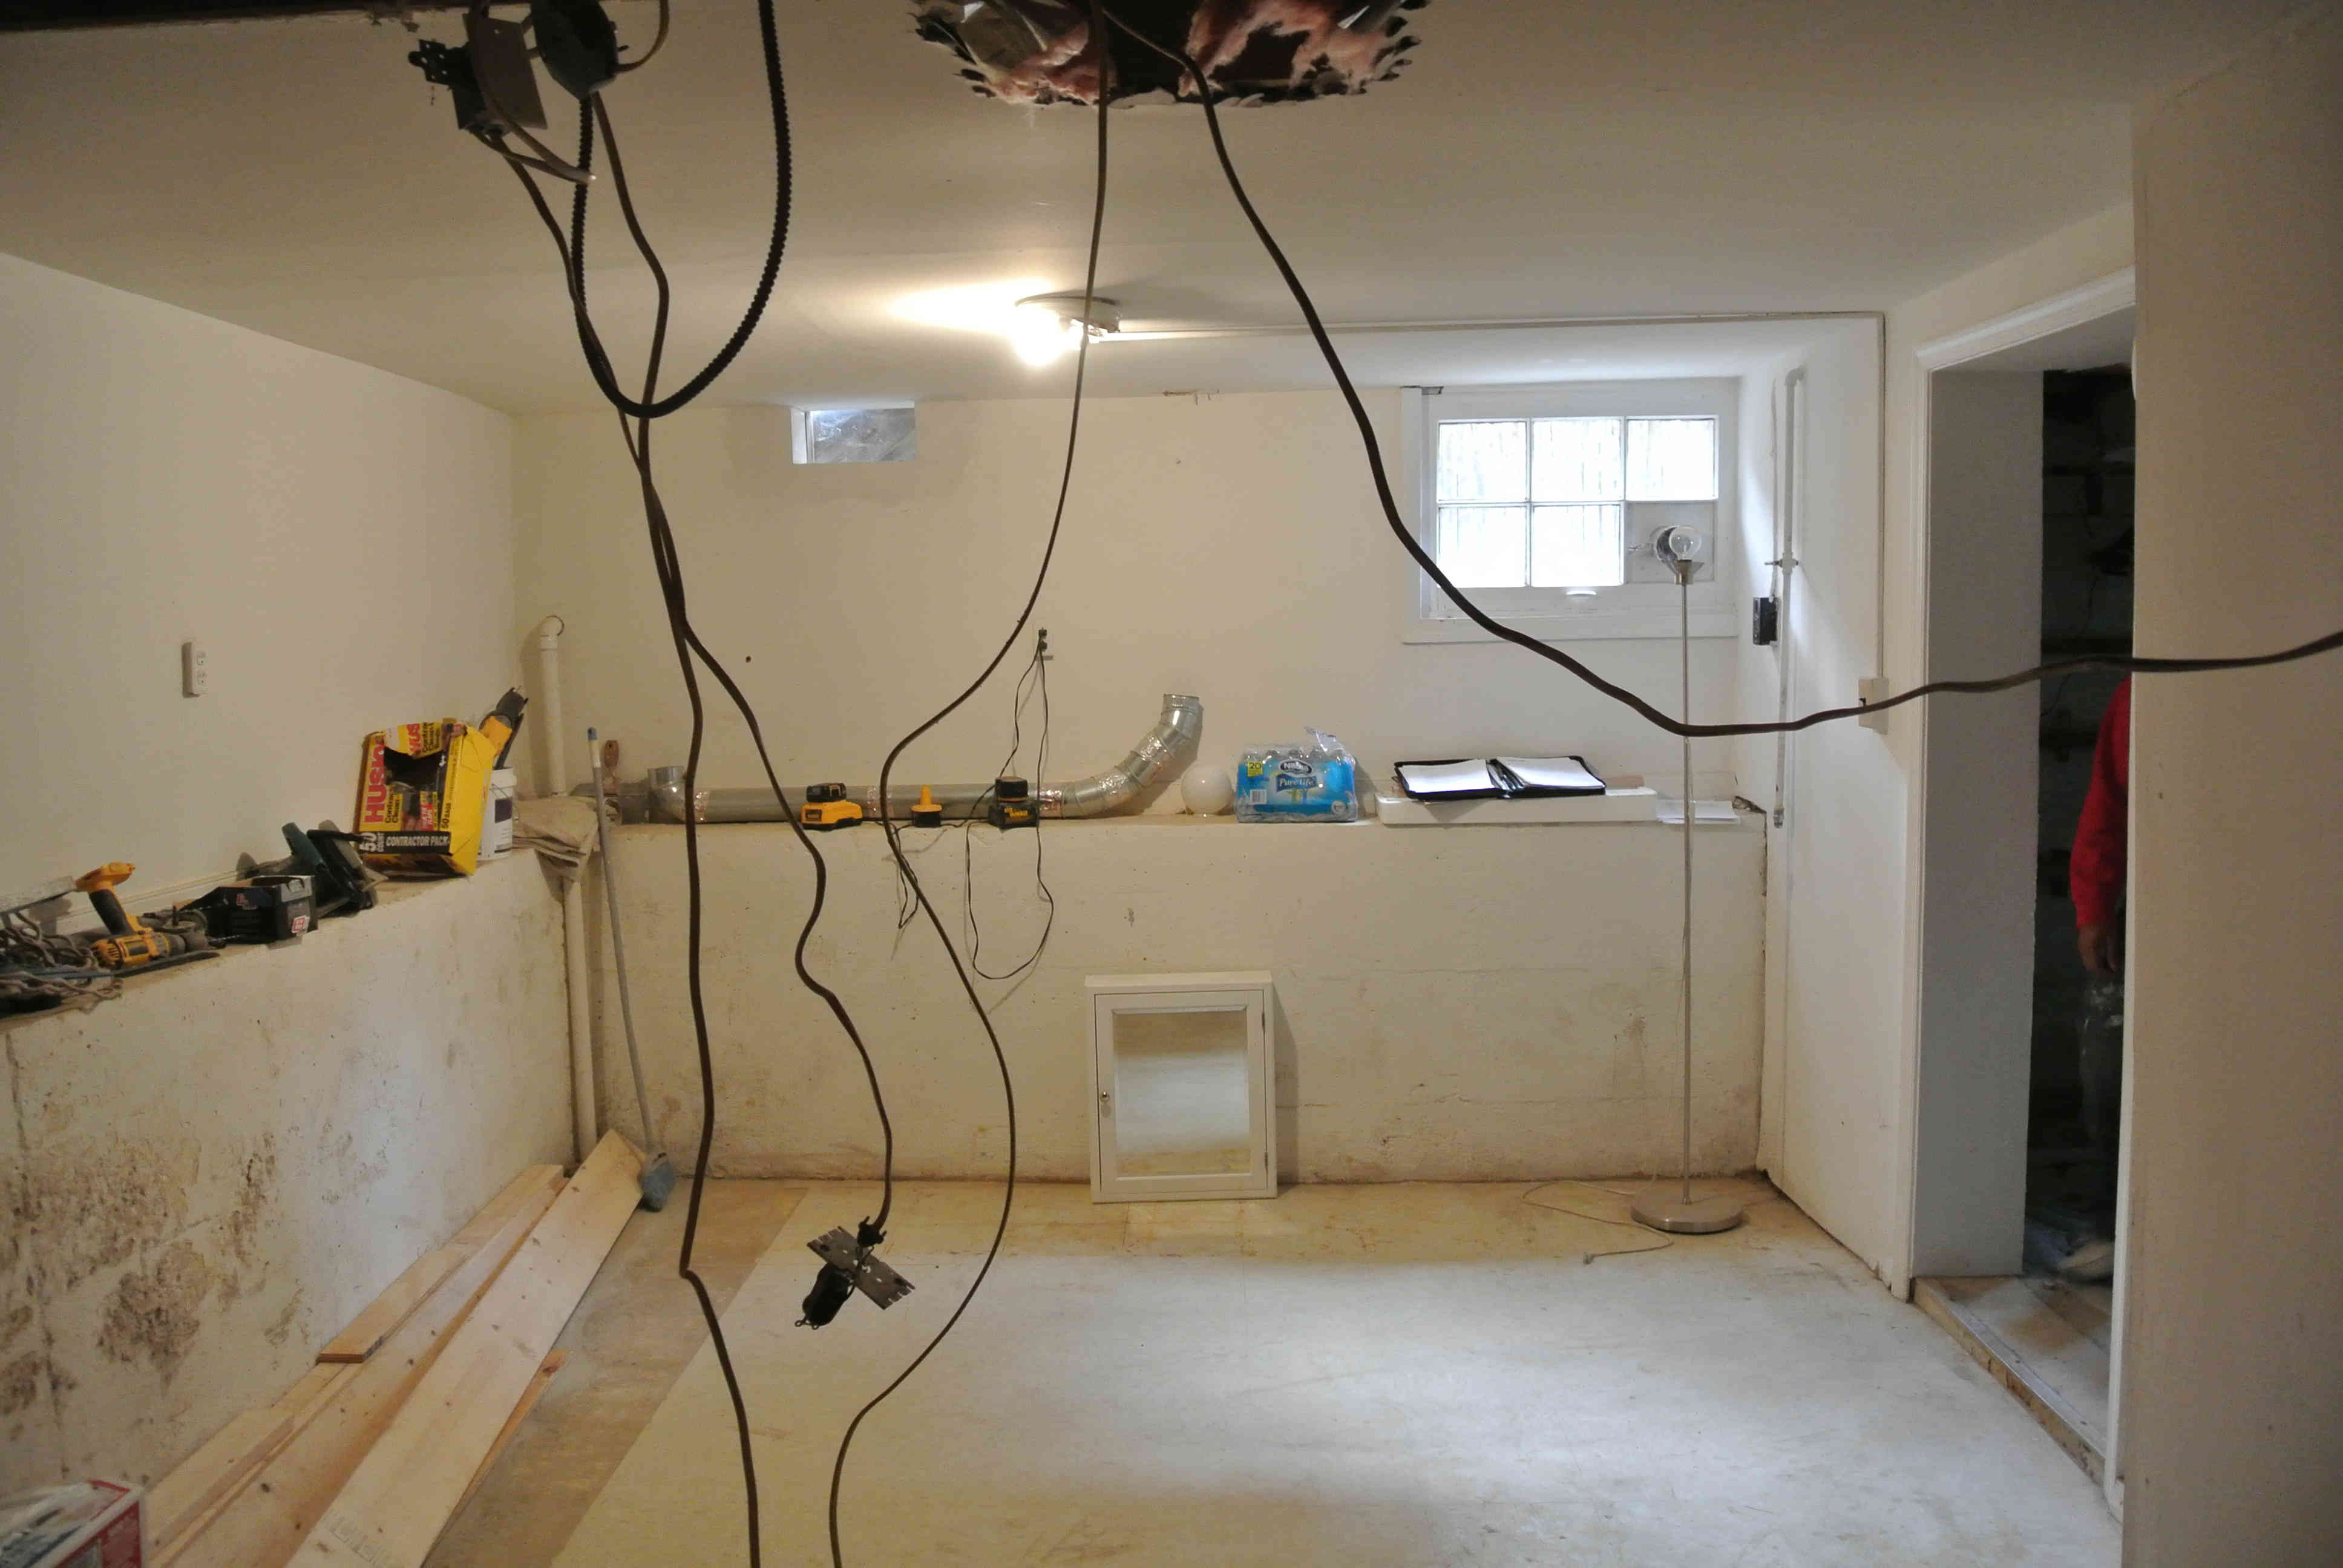 Remodeling & Basement Renovations in Chevy Chase MD - Melness ...